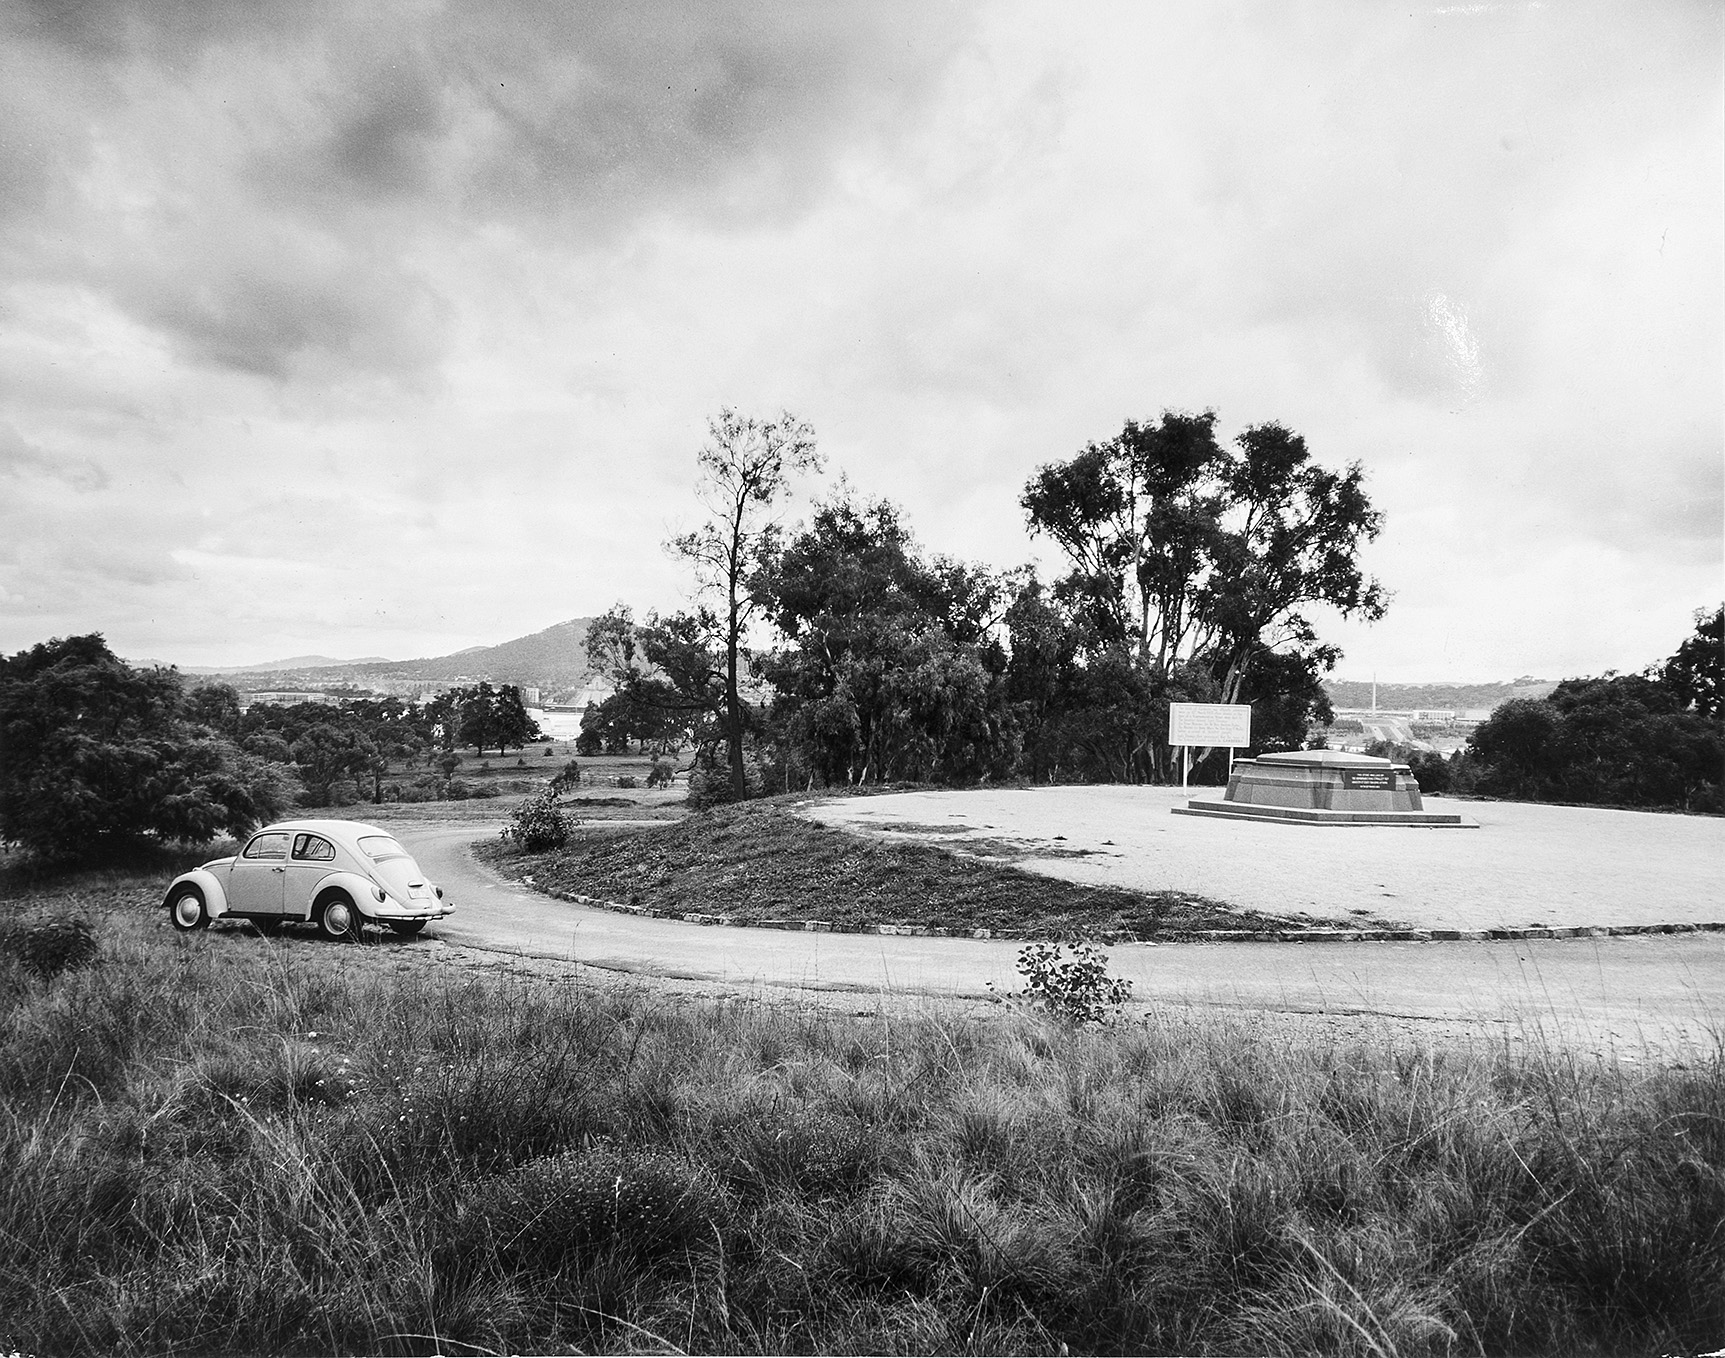 The base of the commencement column for the new capital. Looking from Capital Hill over Camp Hill towards the War Memorial, 30 May 1969